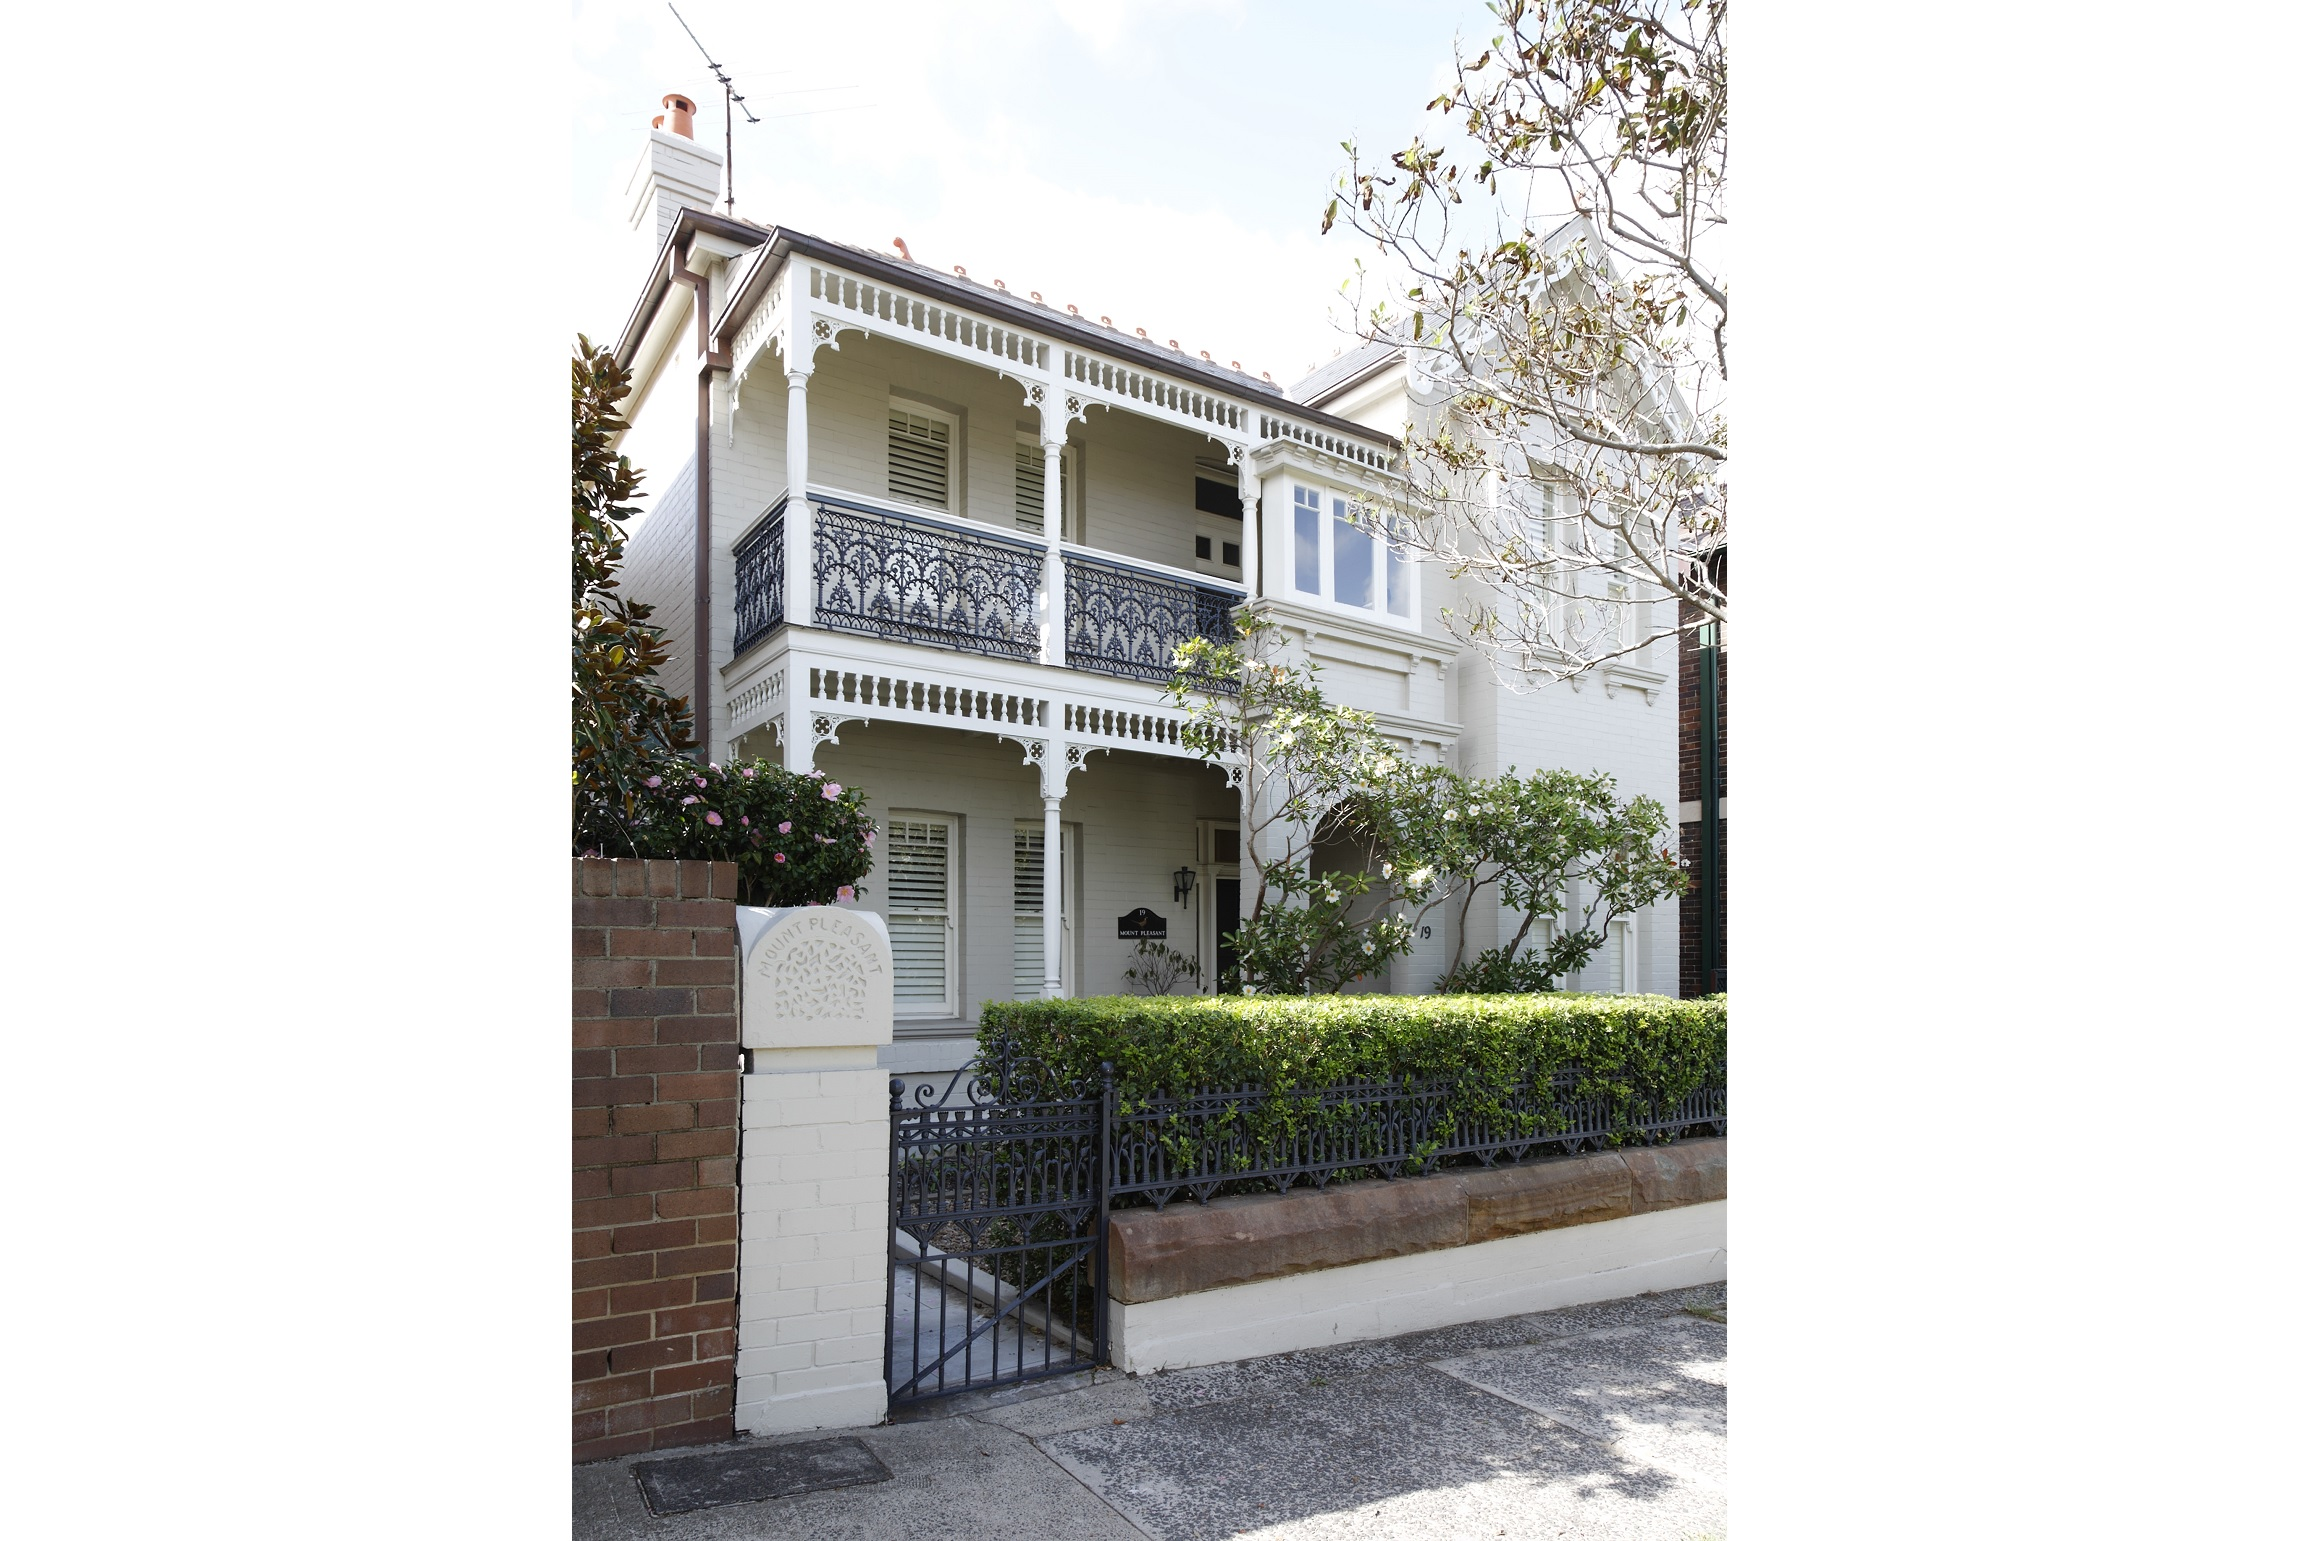 Sydney-Architecture-Townhouse-Heritage-Michael-Bell-Architects(3)